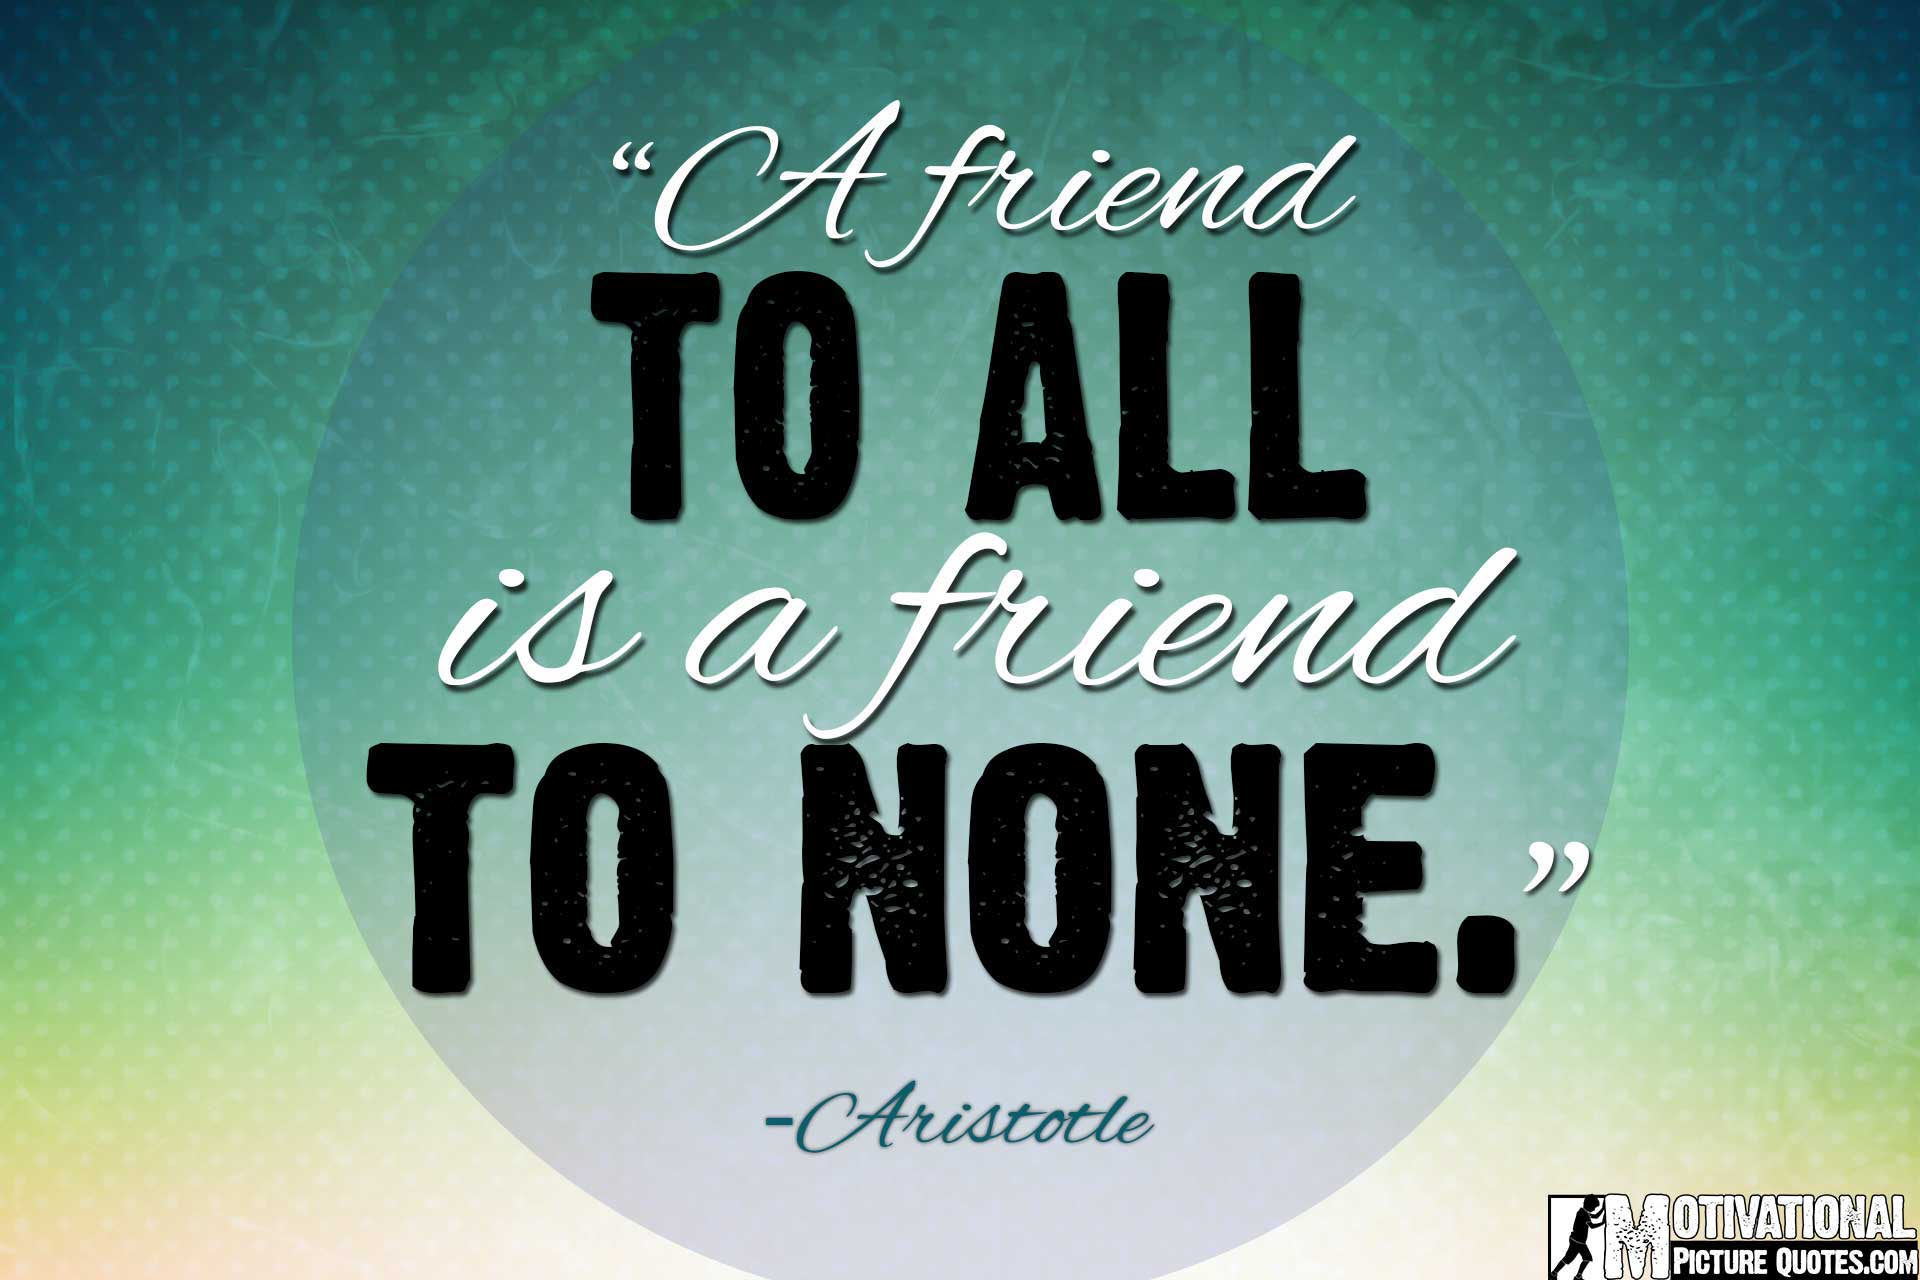 Quotes With Pictures About Friendship 25 Inspirational Friendship Quotes Images  Free Download